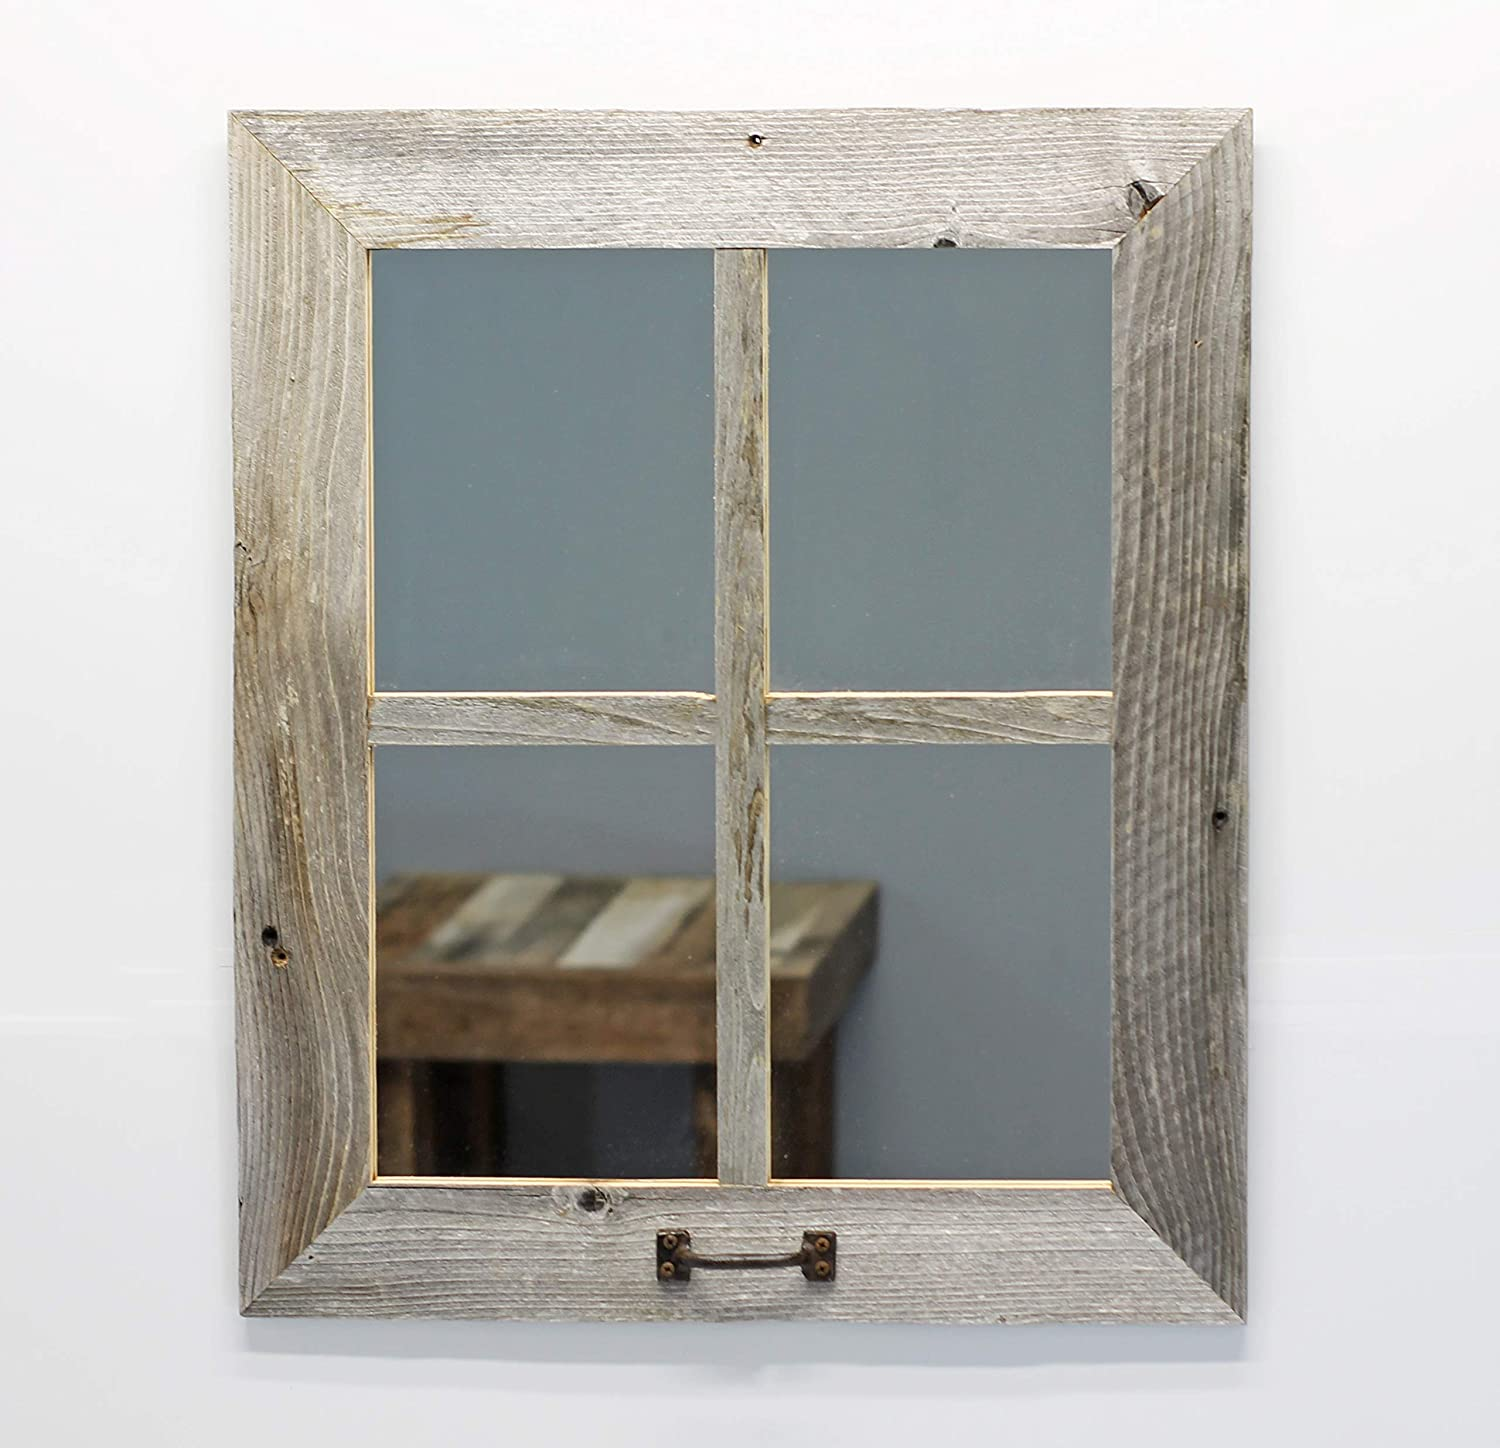 Window Style 4 Pane Mirror Reclaimed Barn Wood 3 Inch Wide Framed Rustic Farmhouse Decorative Gallery Country Decor Mantle Home Living Bed Room Wooden Large 8x10 Wall Hanging Distressed